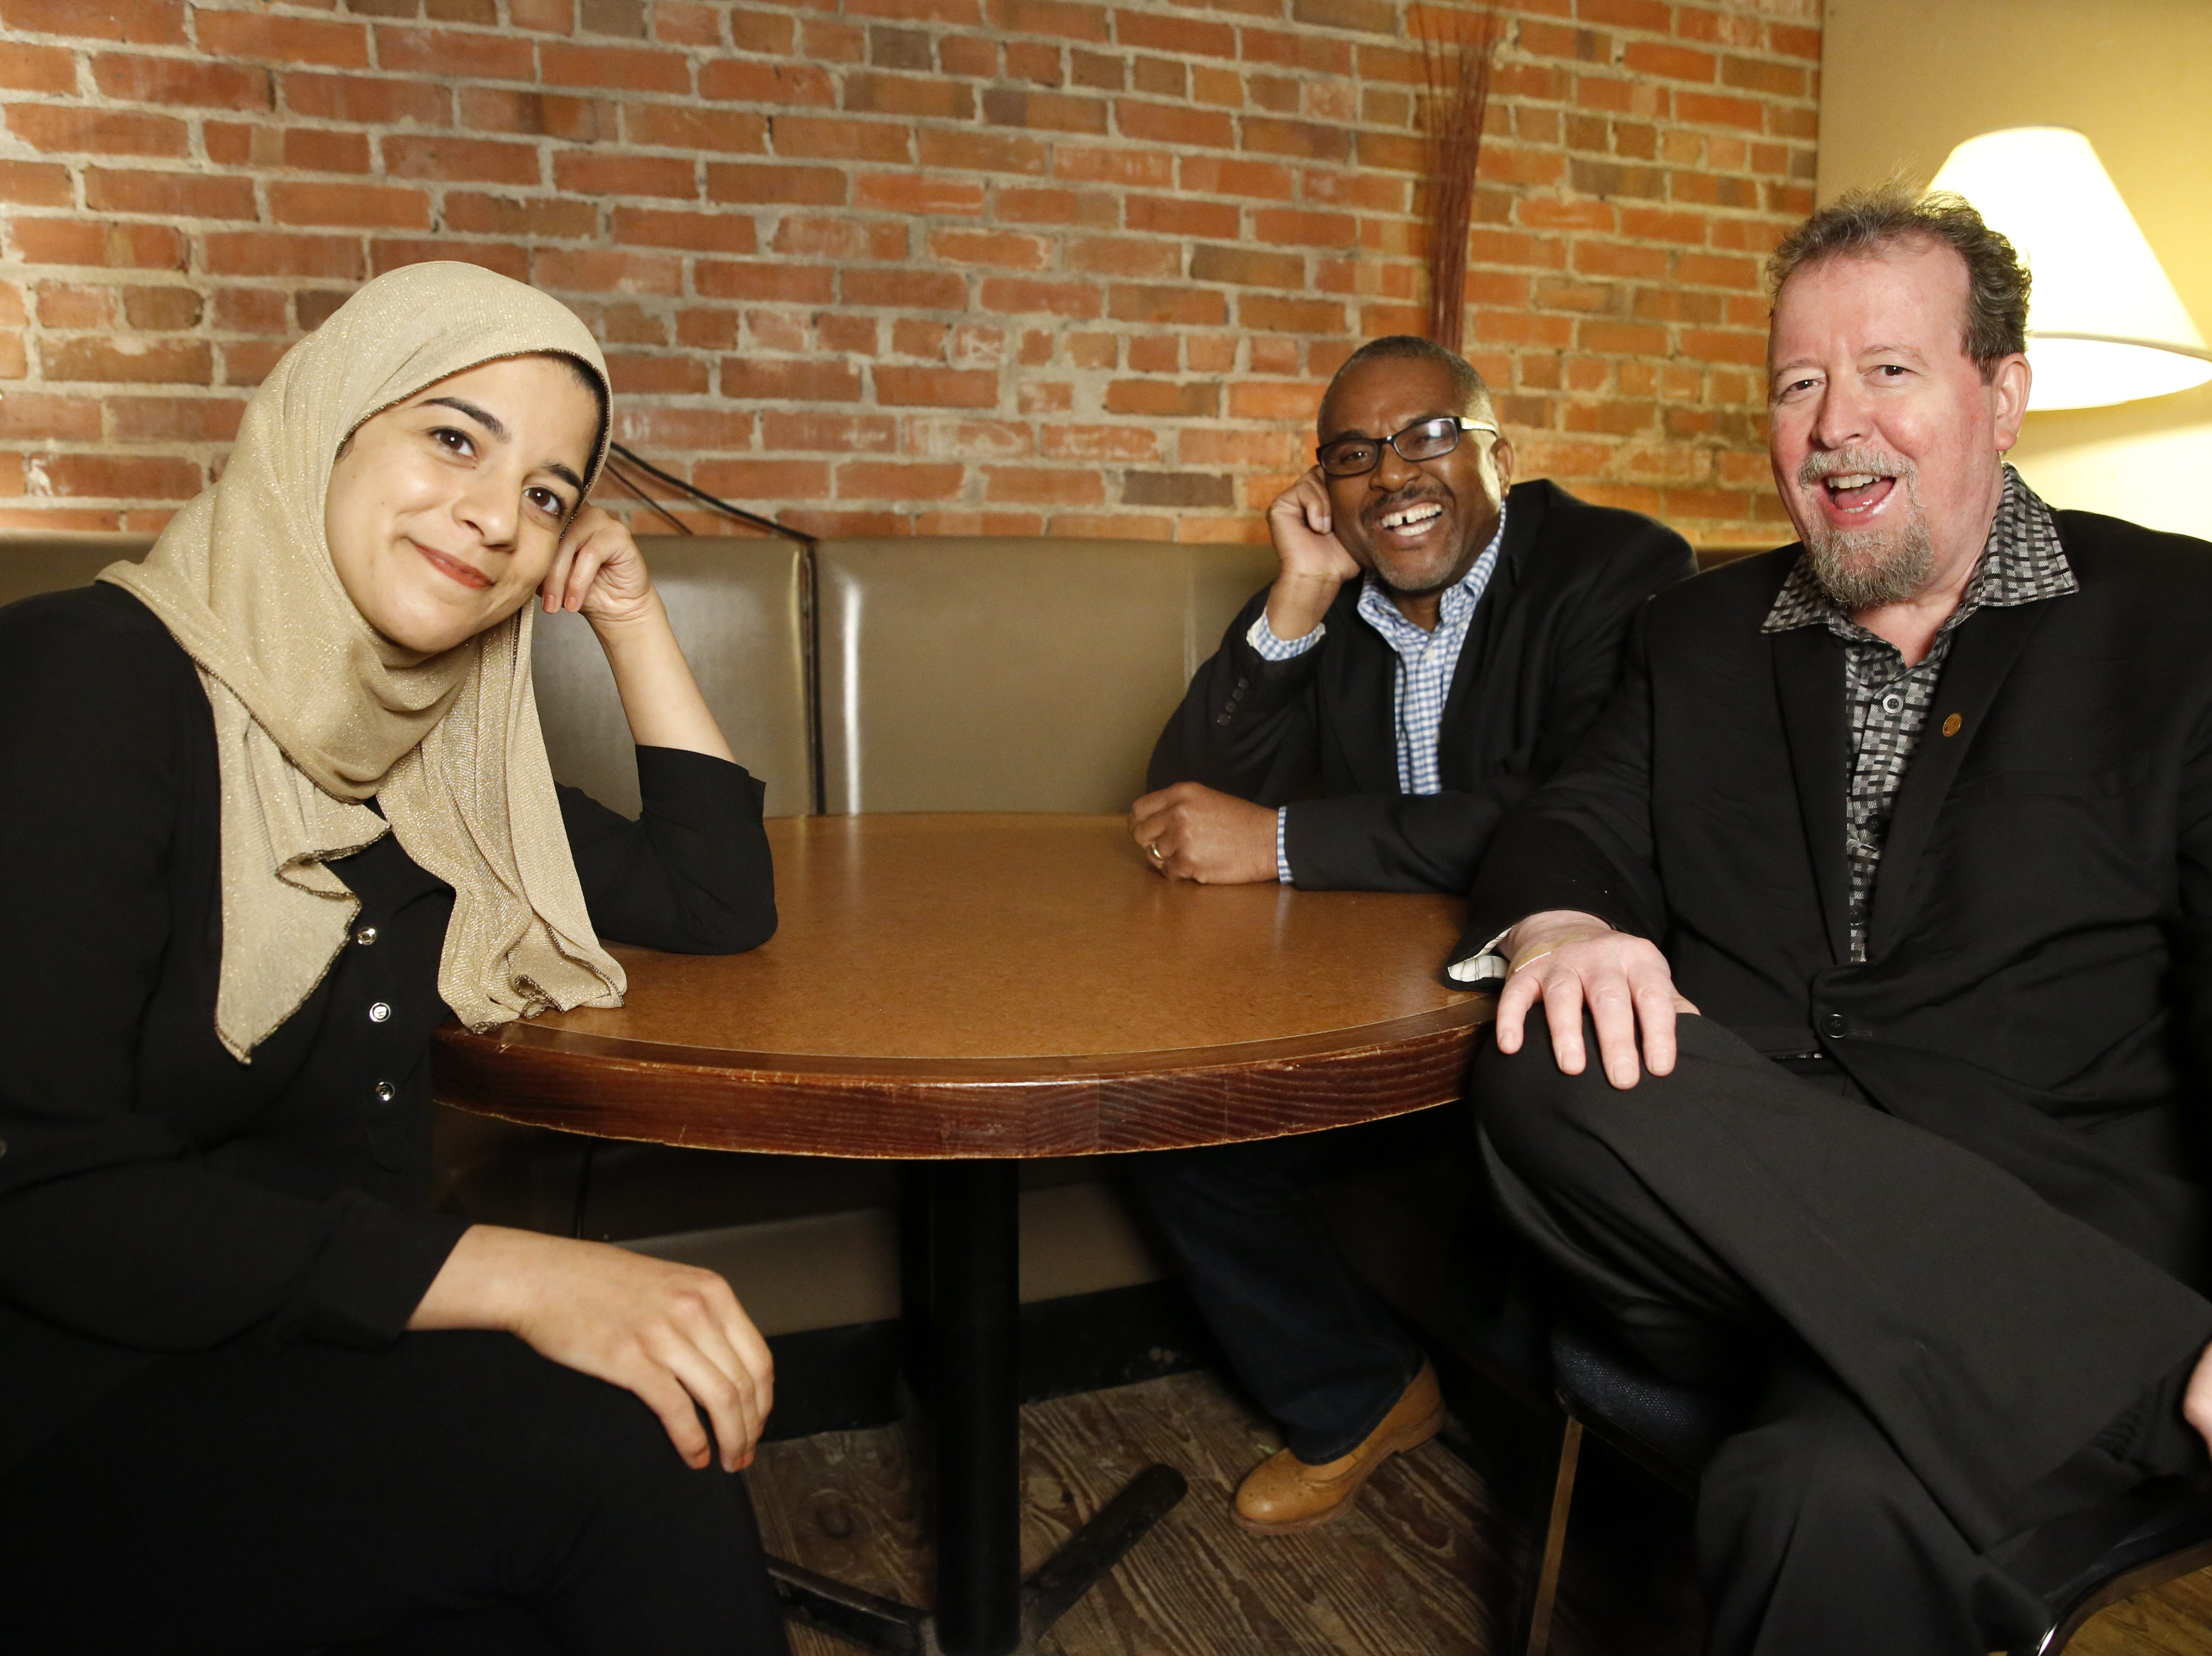 Tallahassee Democrat journalists and storytellers Nada Hassanein, Andrew Skerritt and Mark Hinson told their own stories on stage at the Junction at Monroe during the Democrat's first Storytellers Project Jan 29.